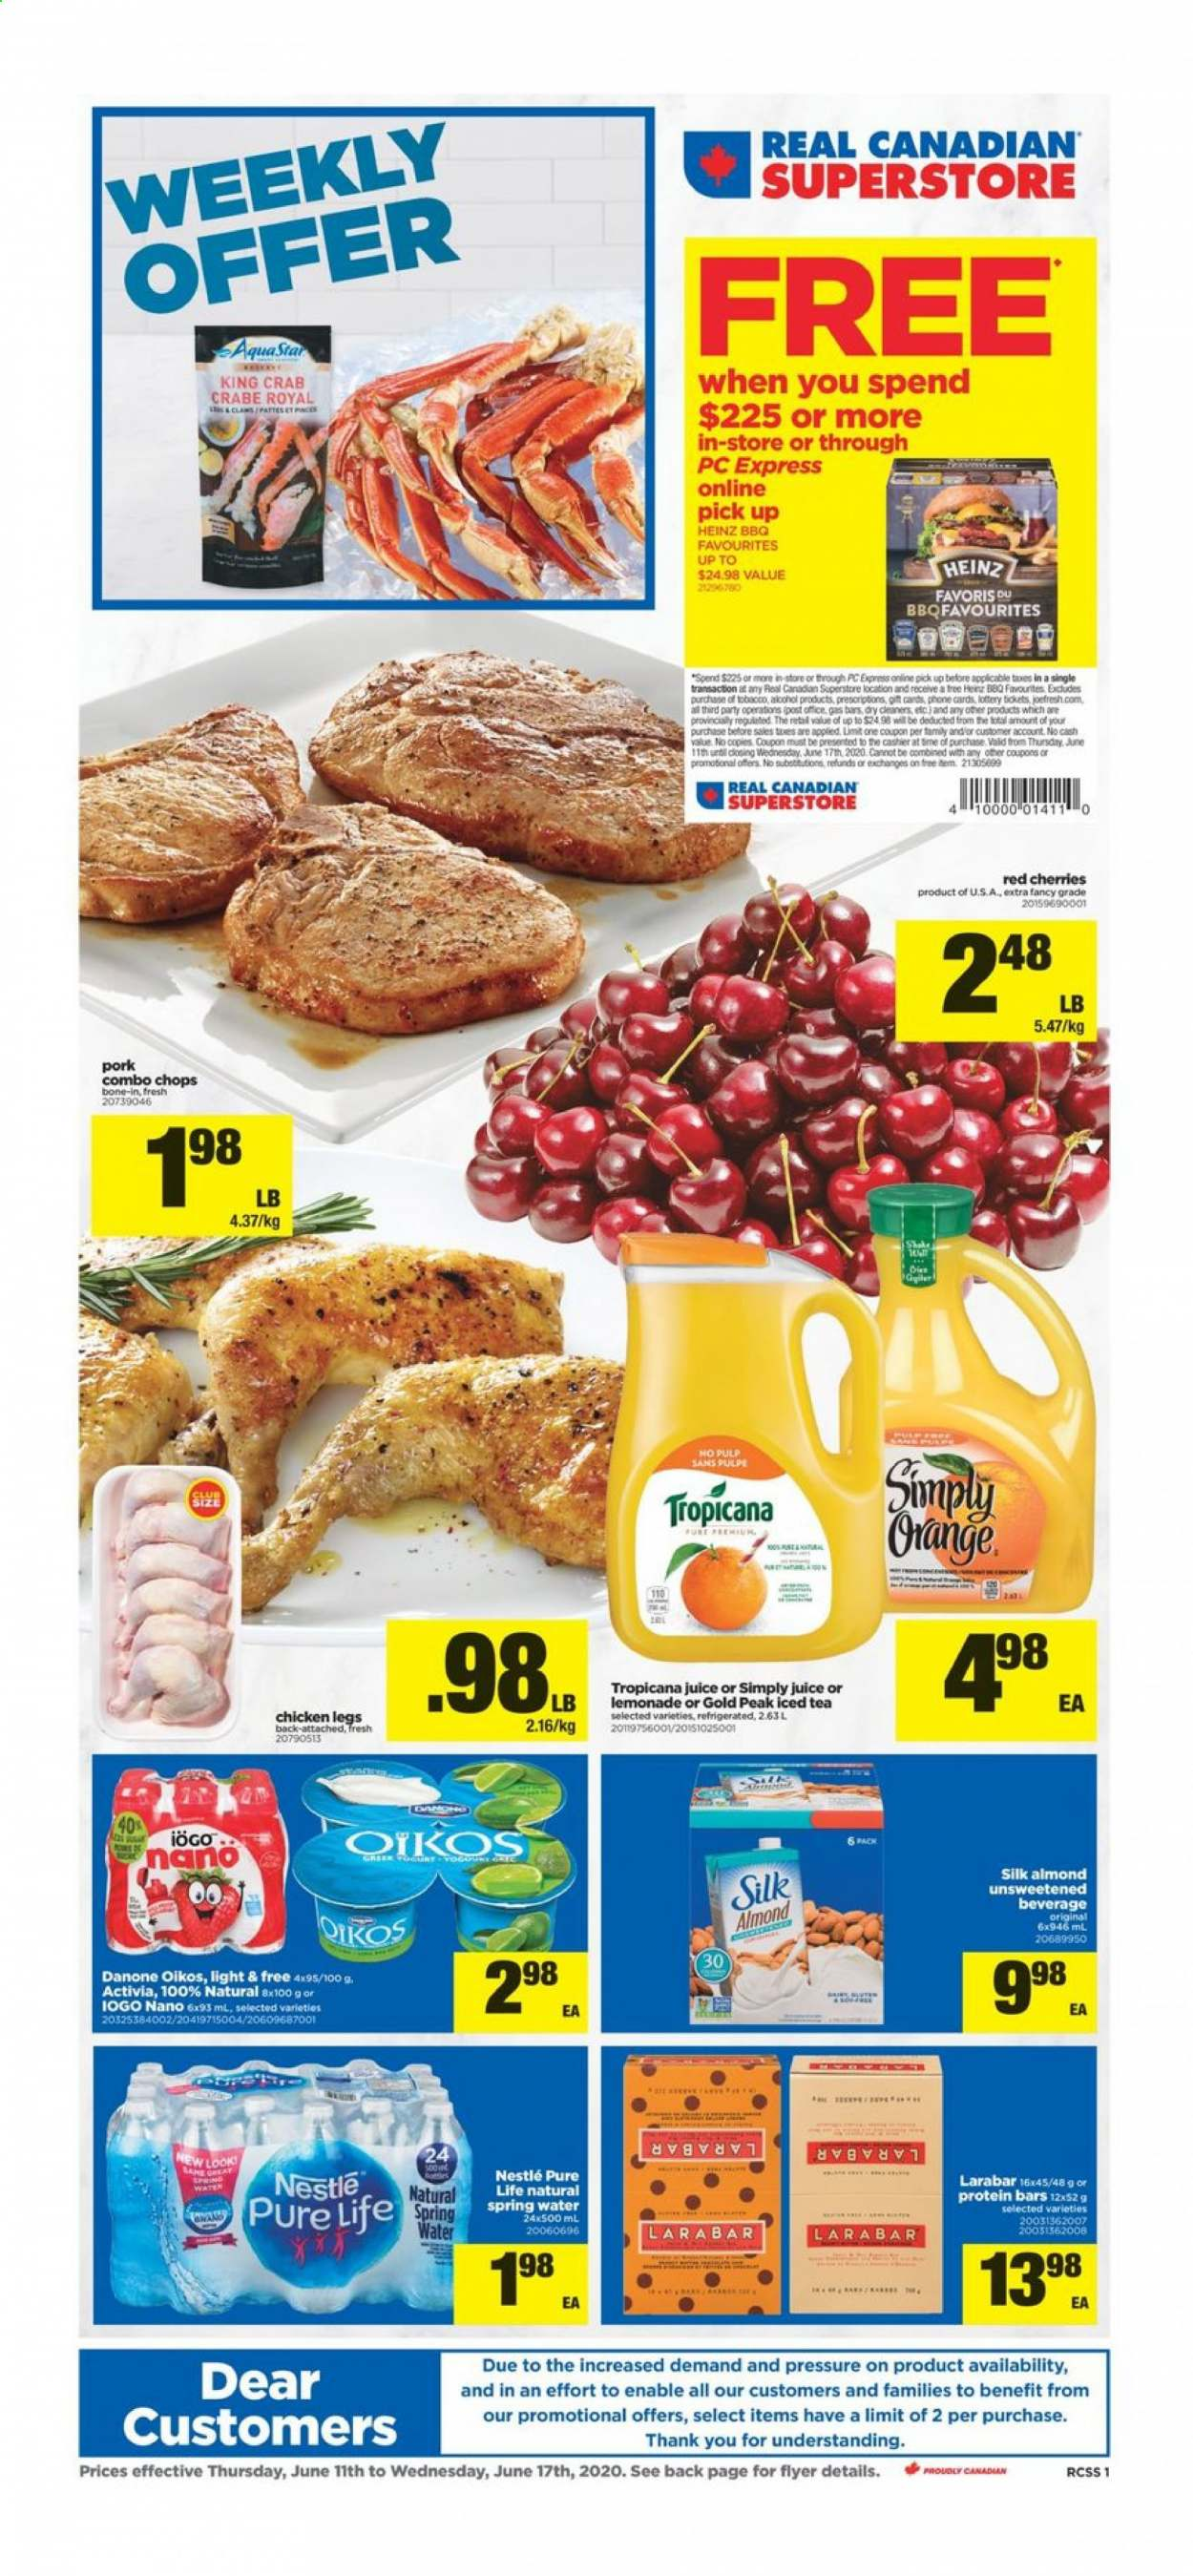 Real Canadian Superstore Flyer  - June 11, 2020 - June 17, 2020. Page 1.